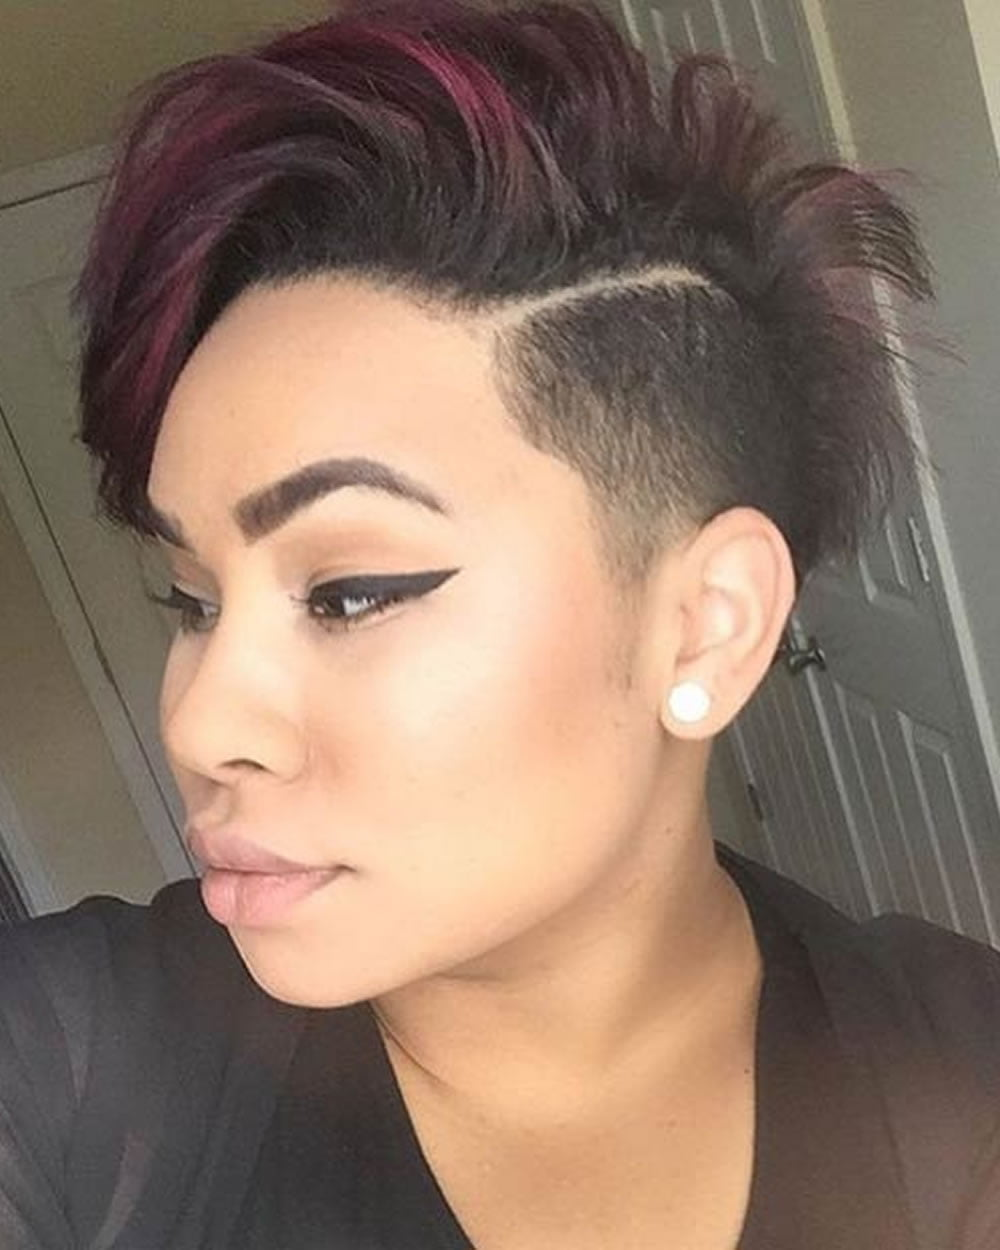 Curly Short Pixie Haircuts Image Collections Haircut Ideas For - Styling curly pixie